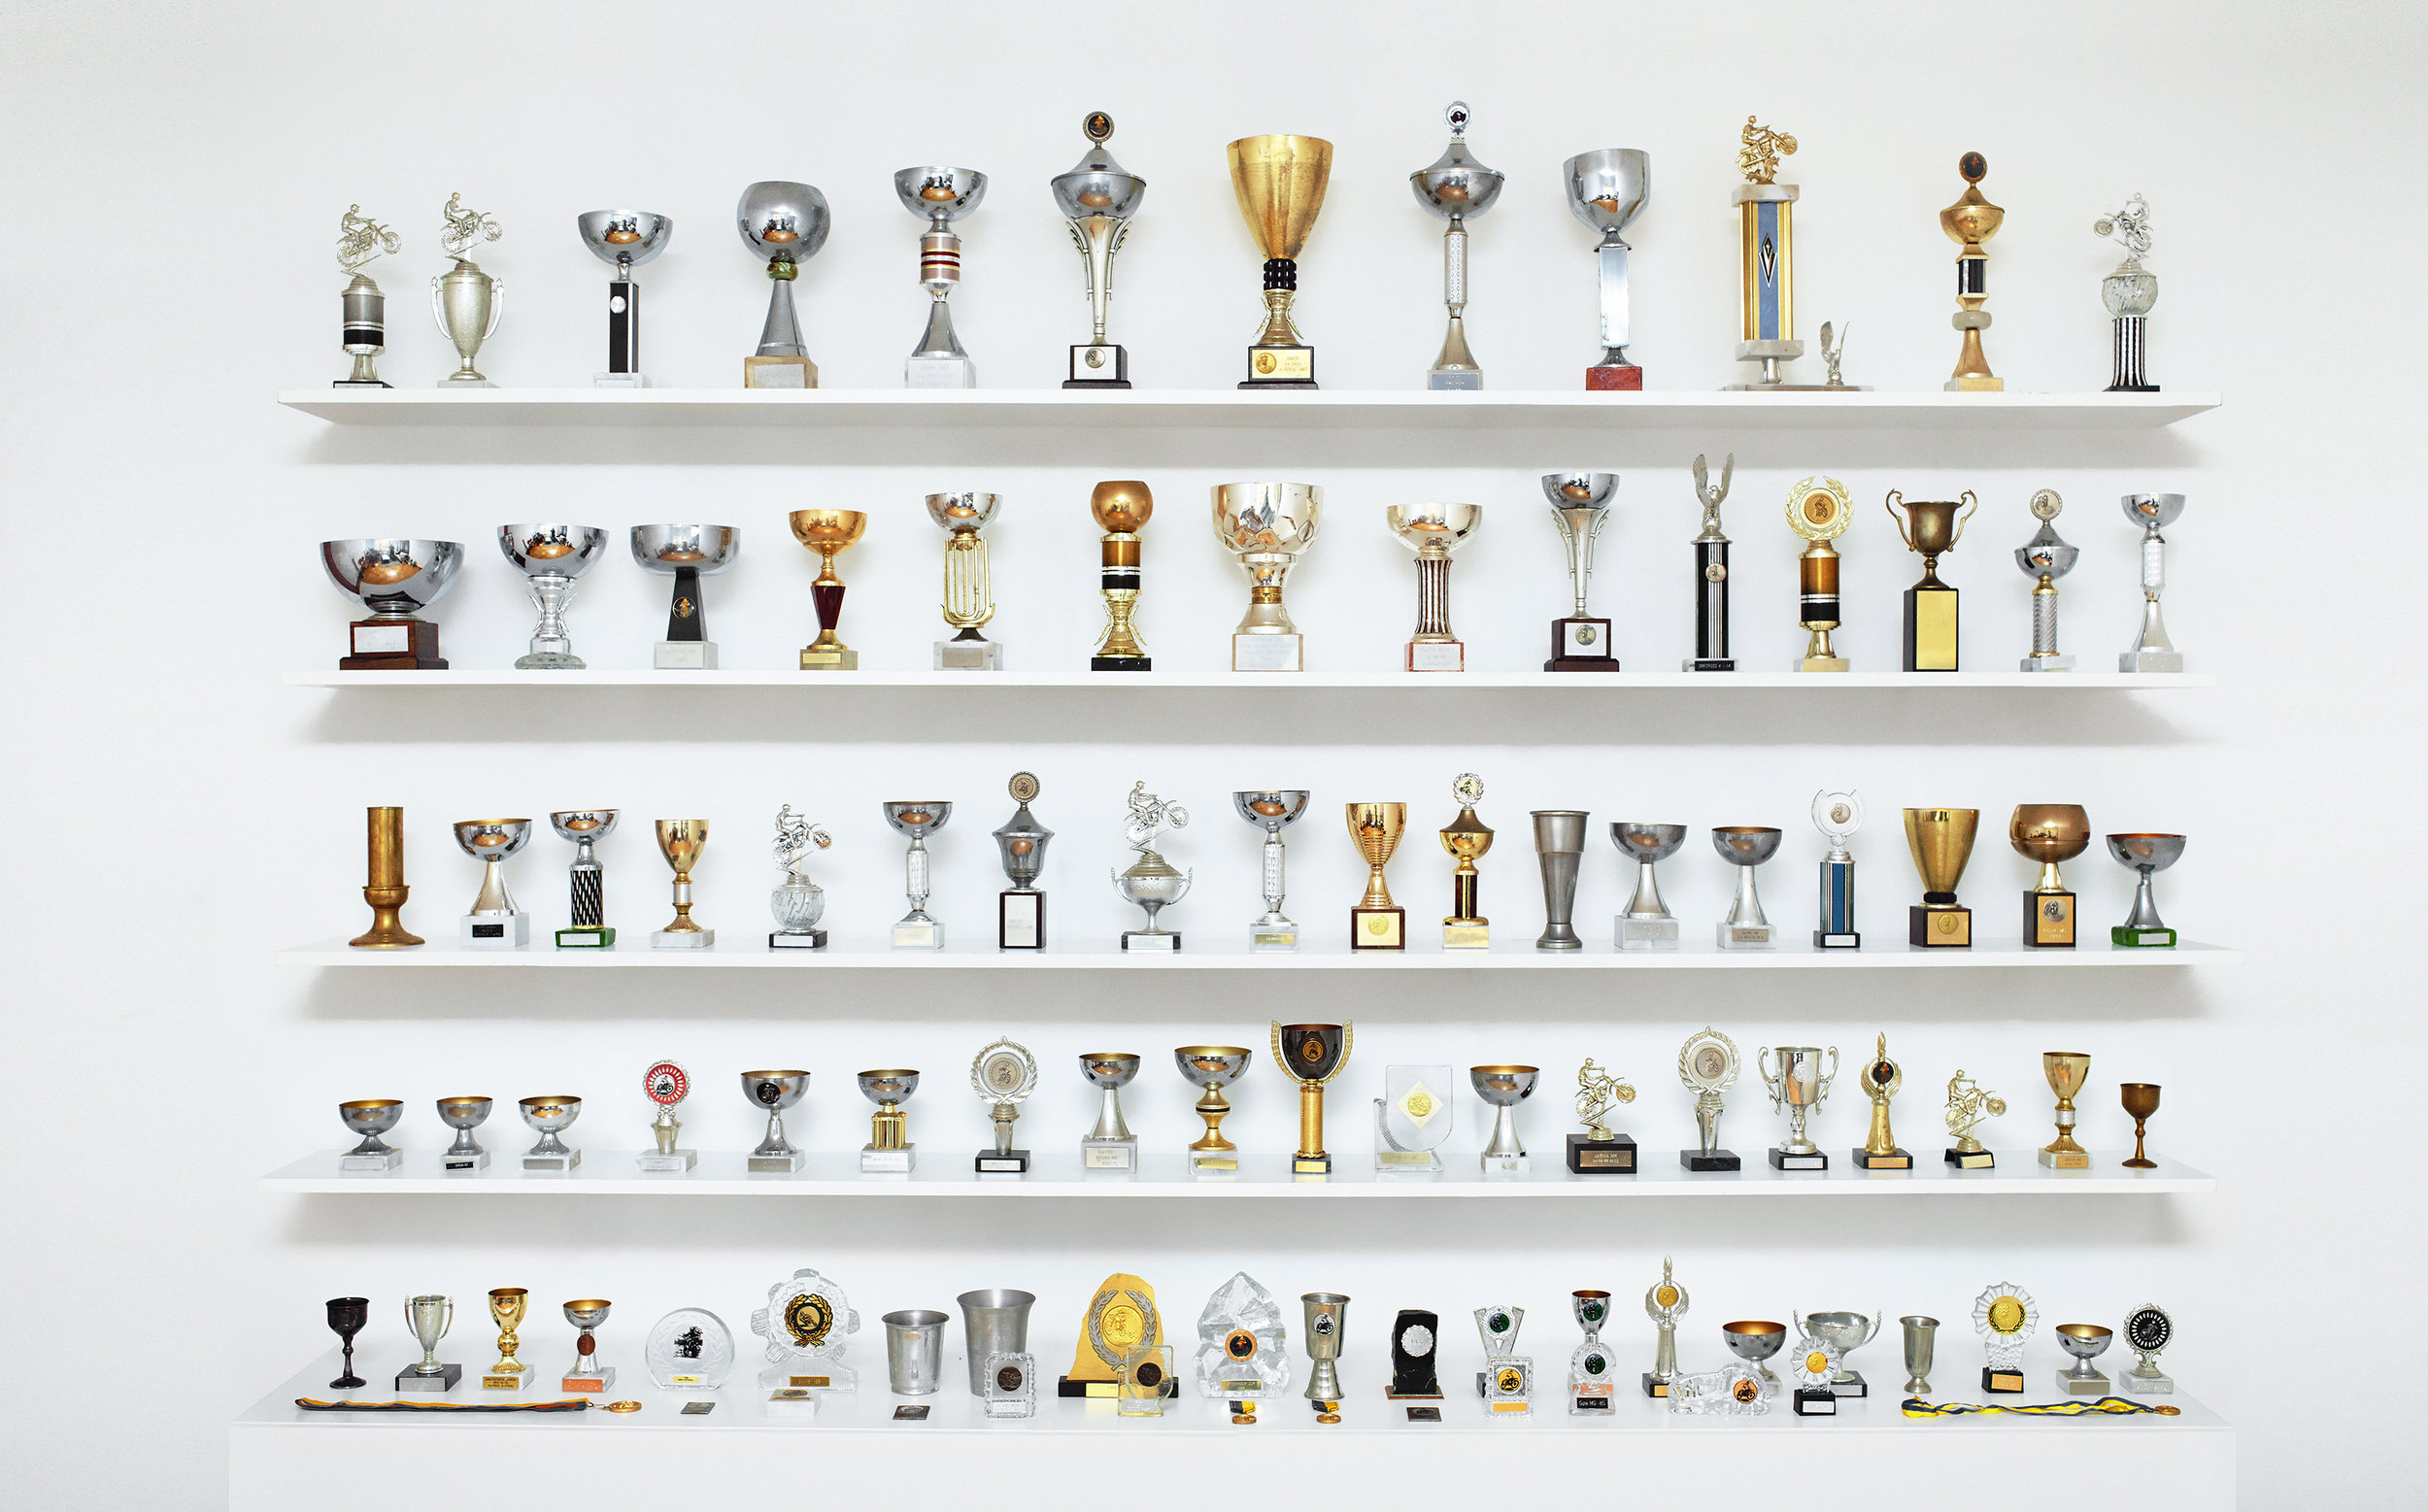 Some of my trophies